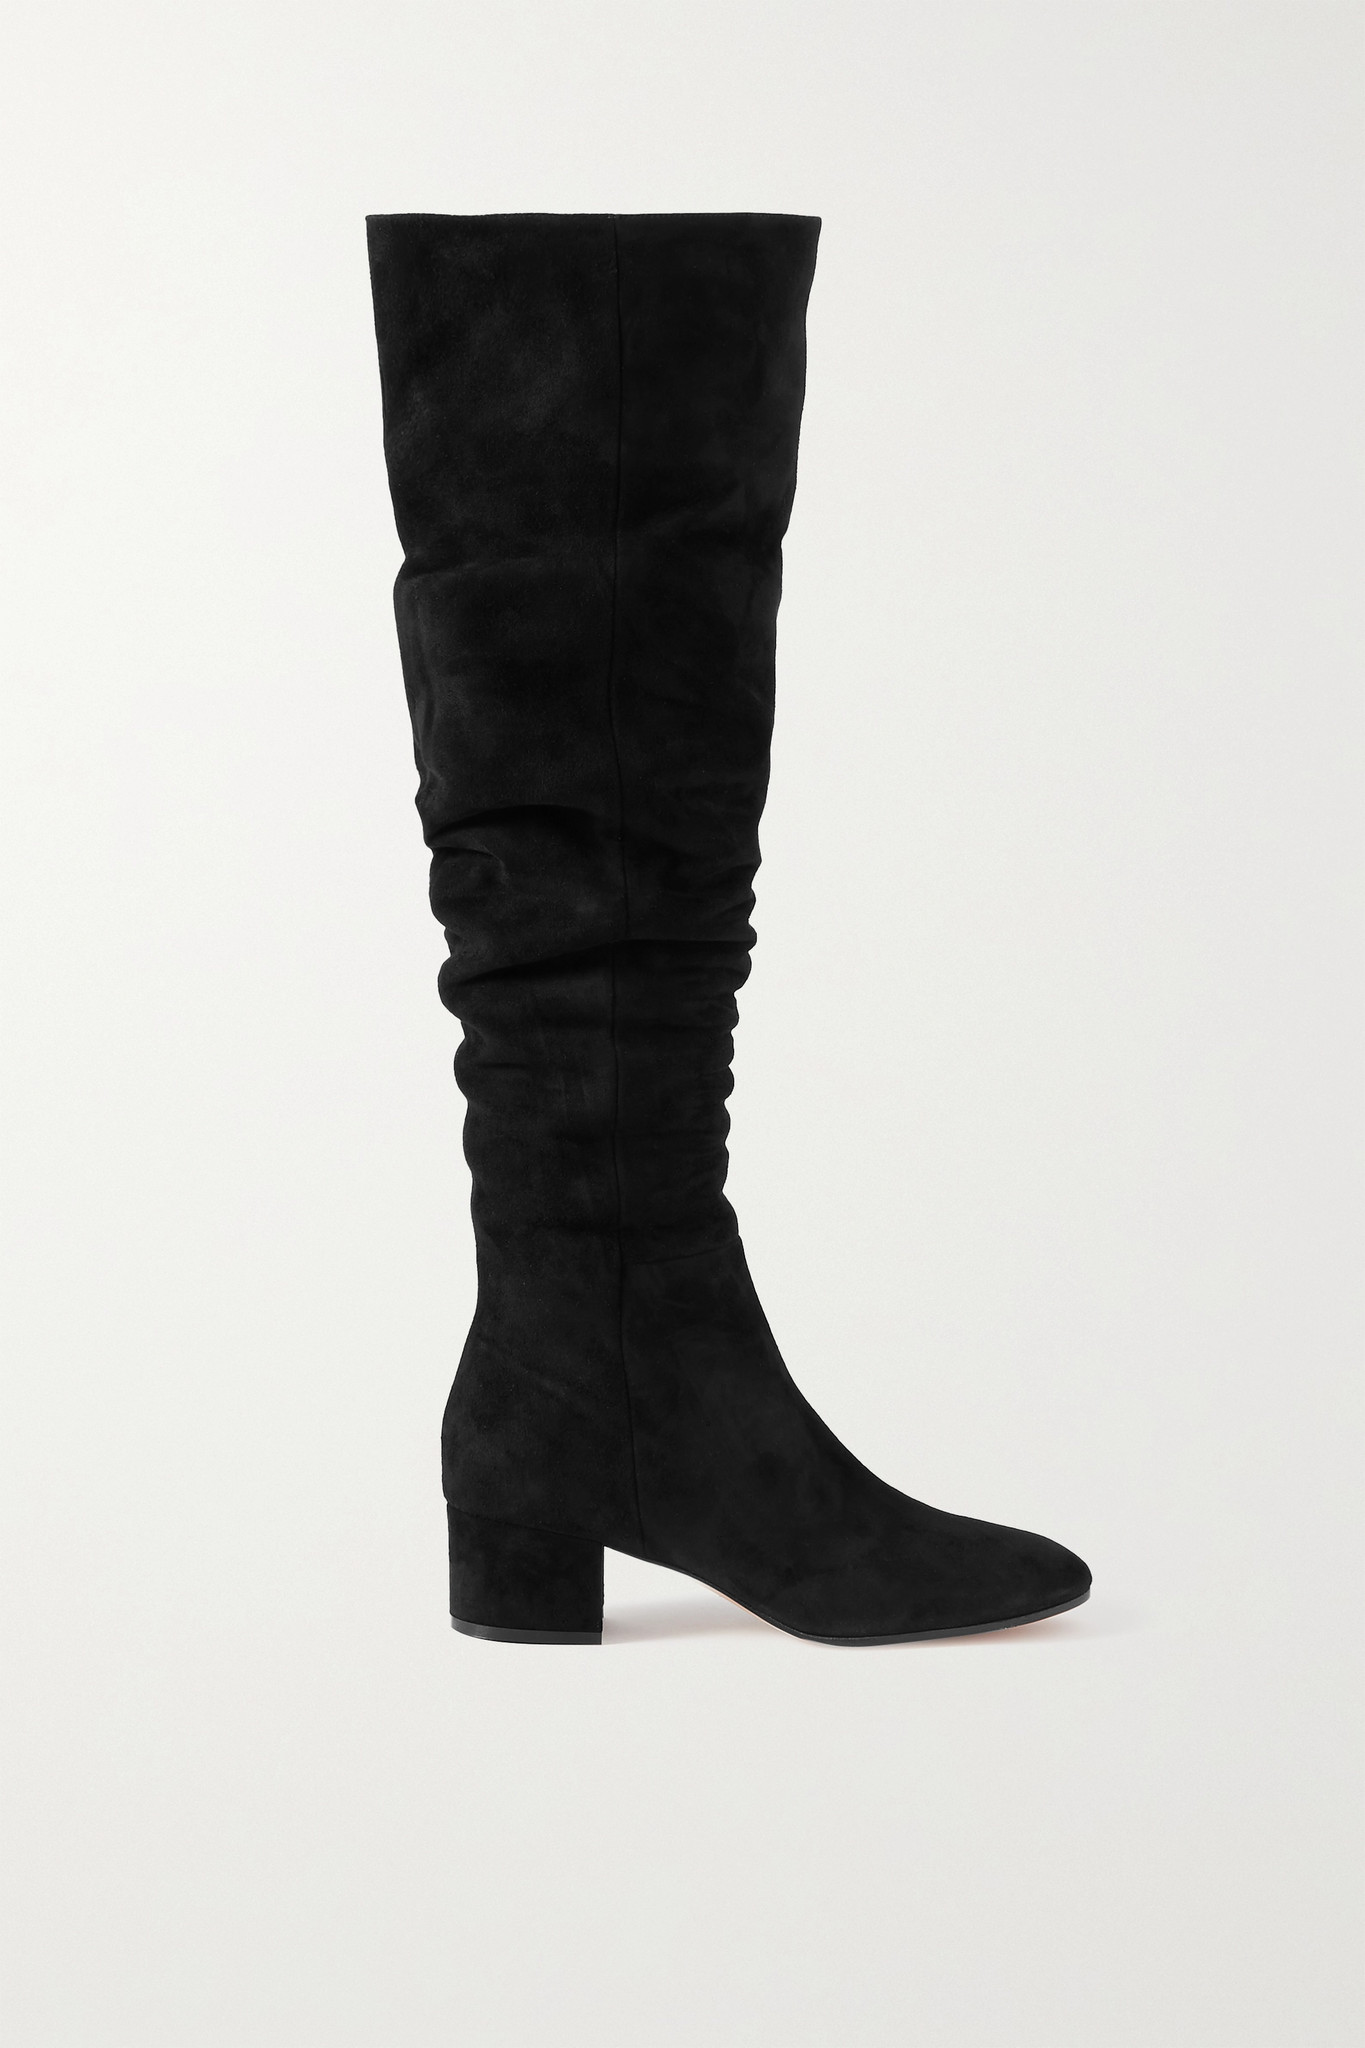 GIANVITO ROSSI - 45 Suede Over-the-knee Boots - Black - IT36